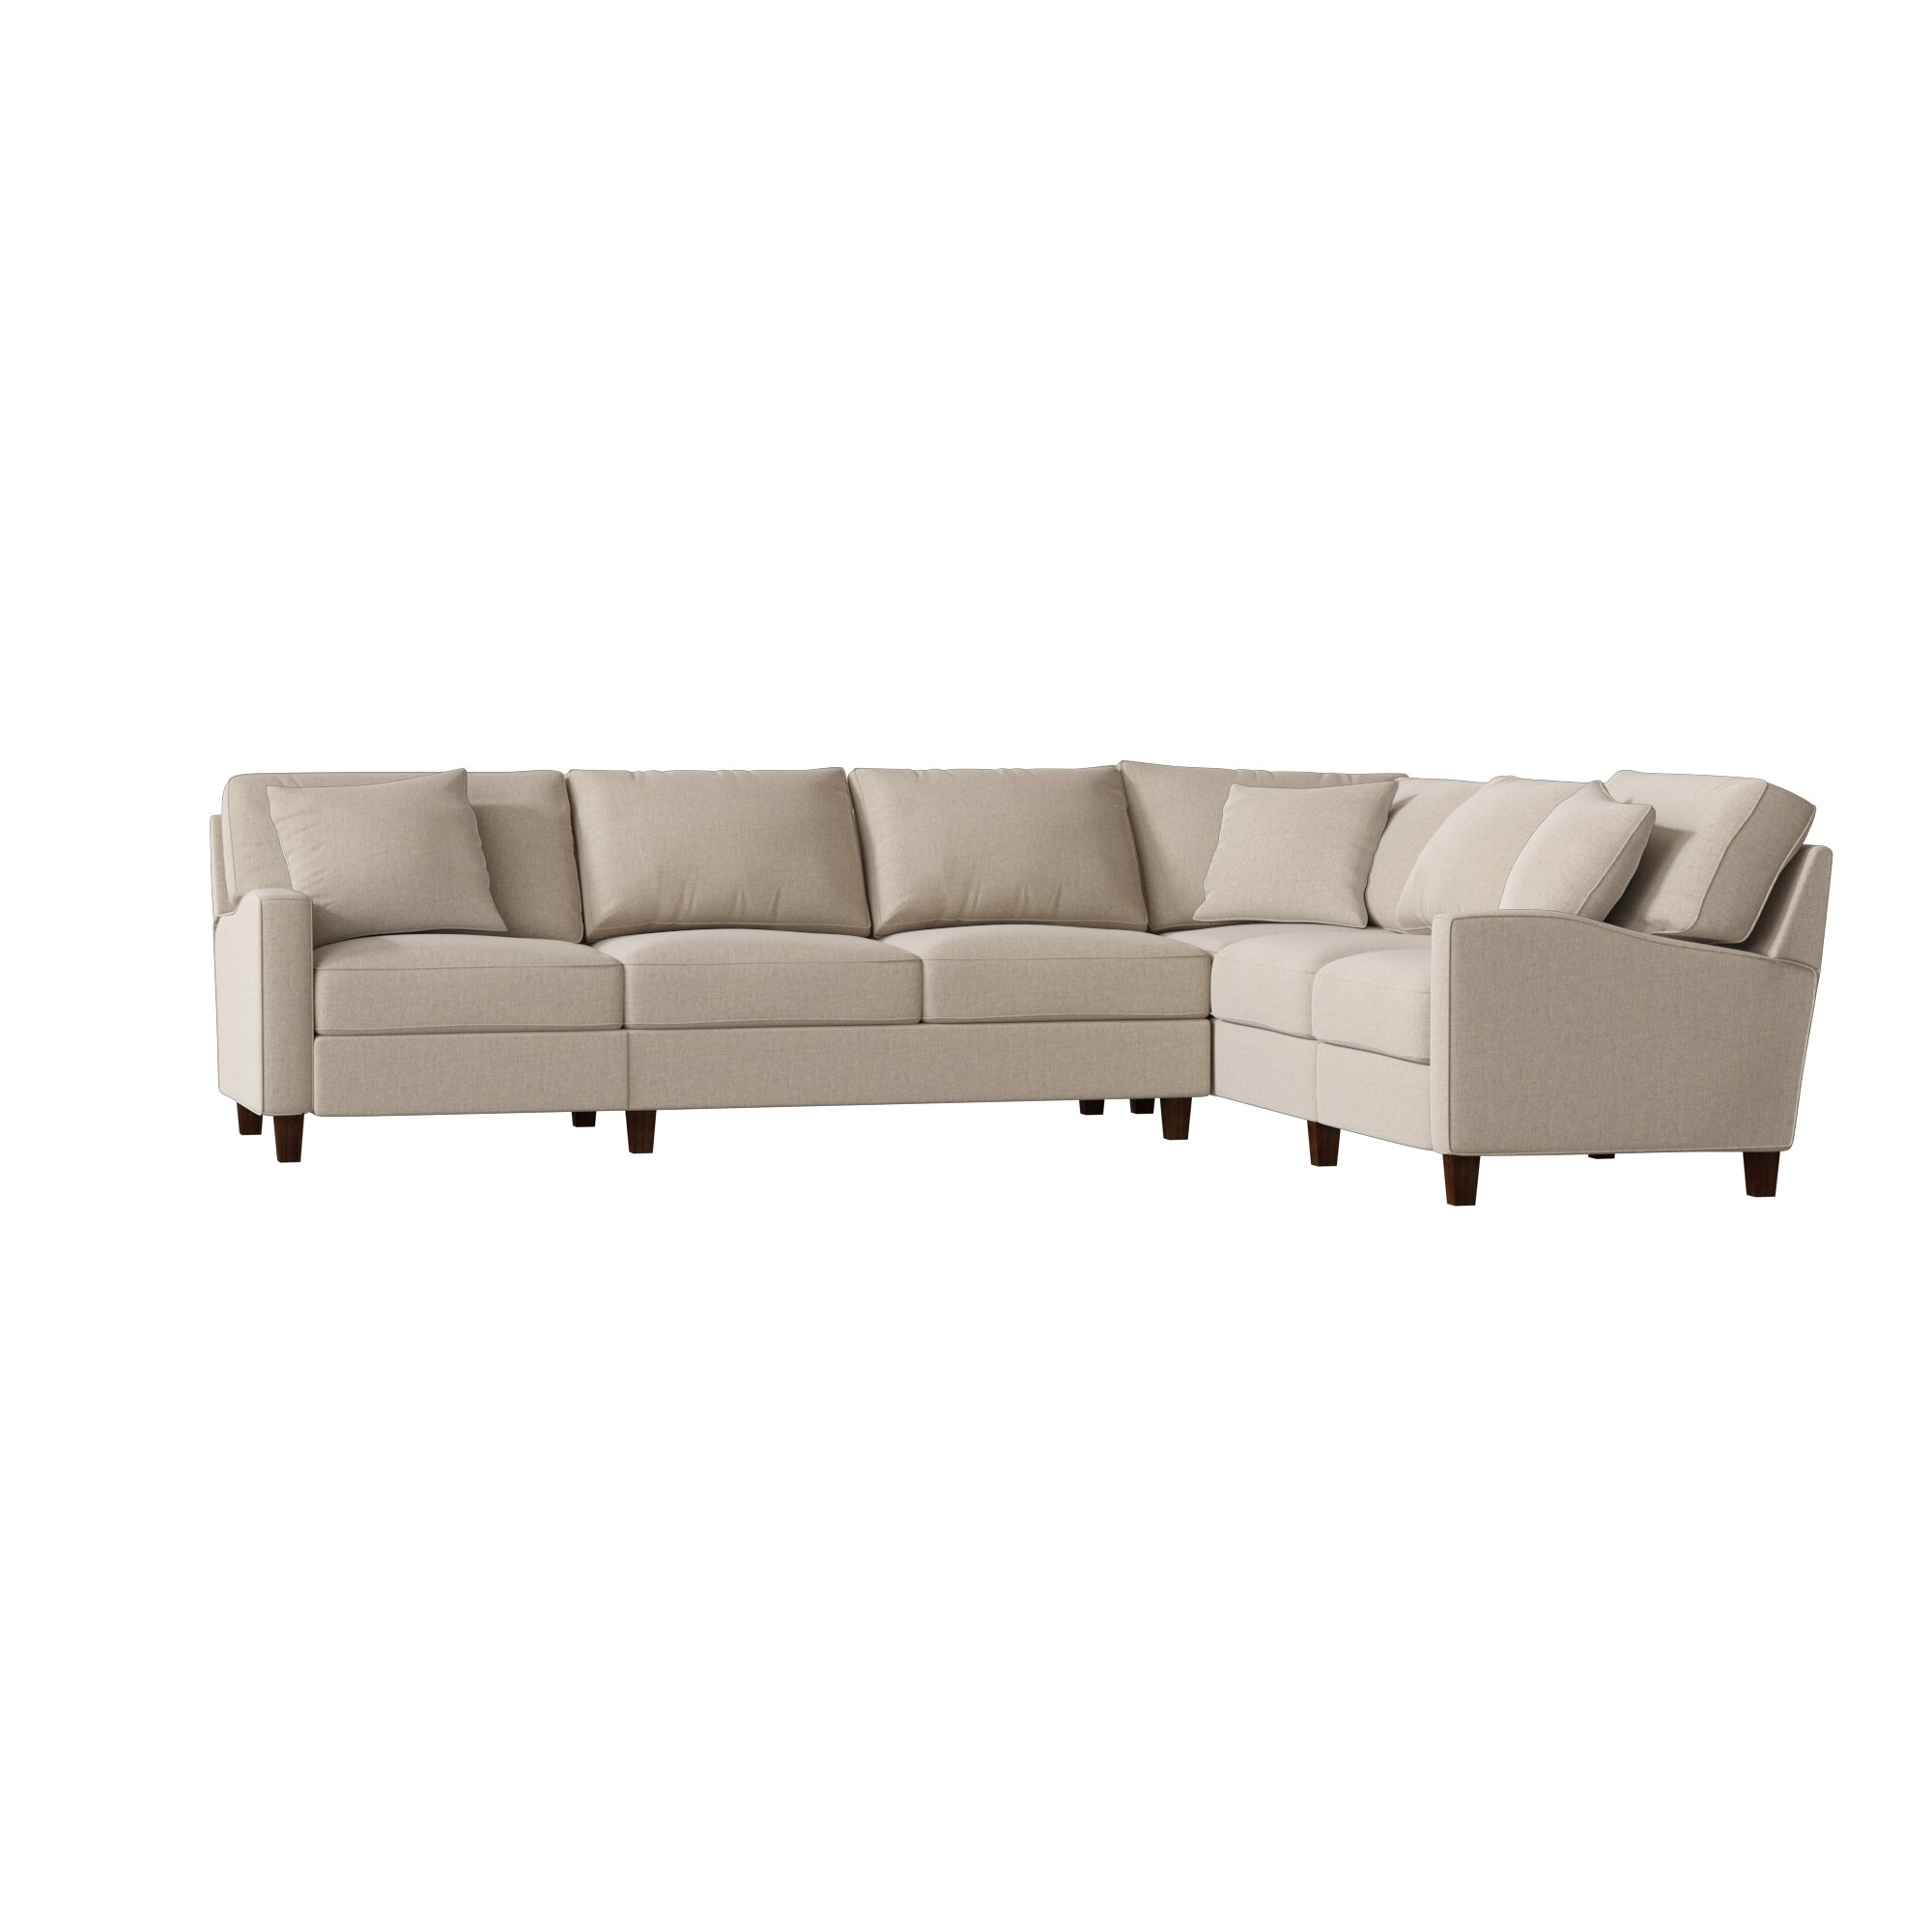 Magnificent Off White Sectional Sofa Wayfair Home Interior And Landscaping Ologienasavecom